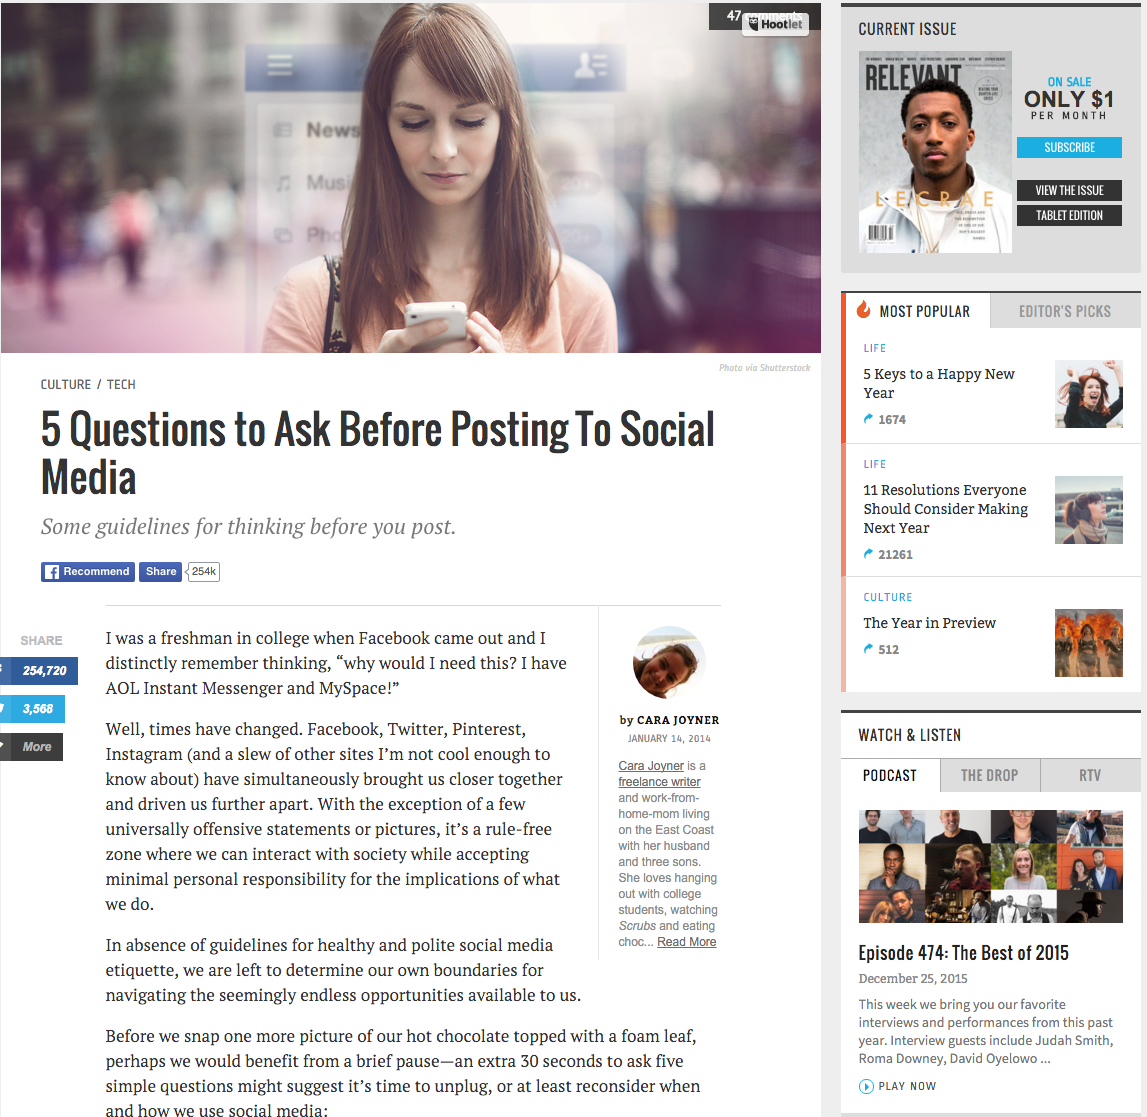 5 Questions to Ask Before Posting To Social Media